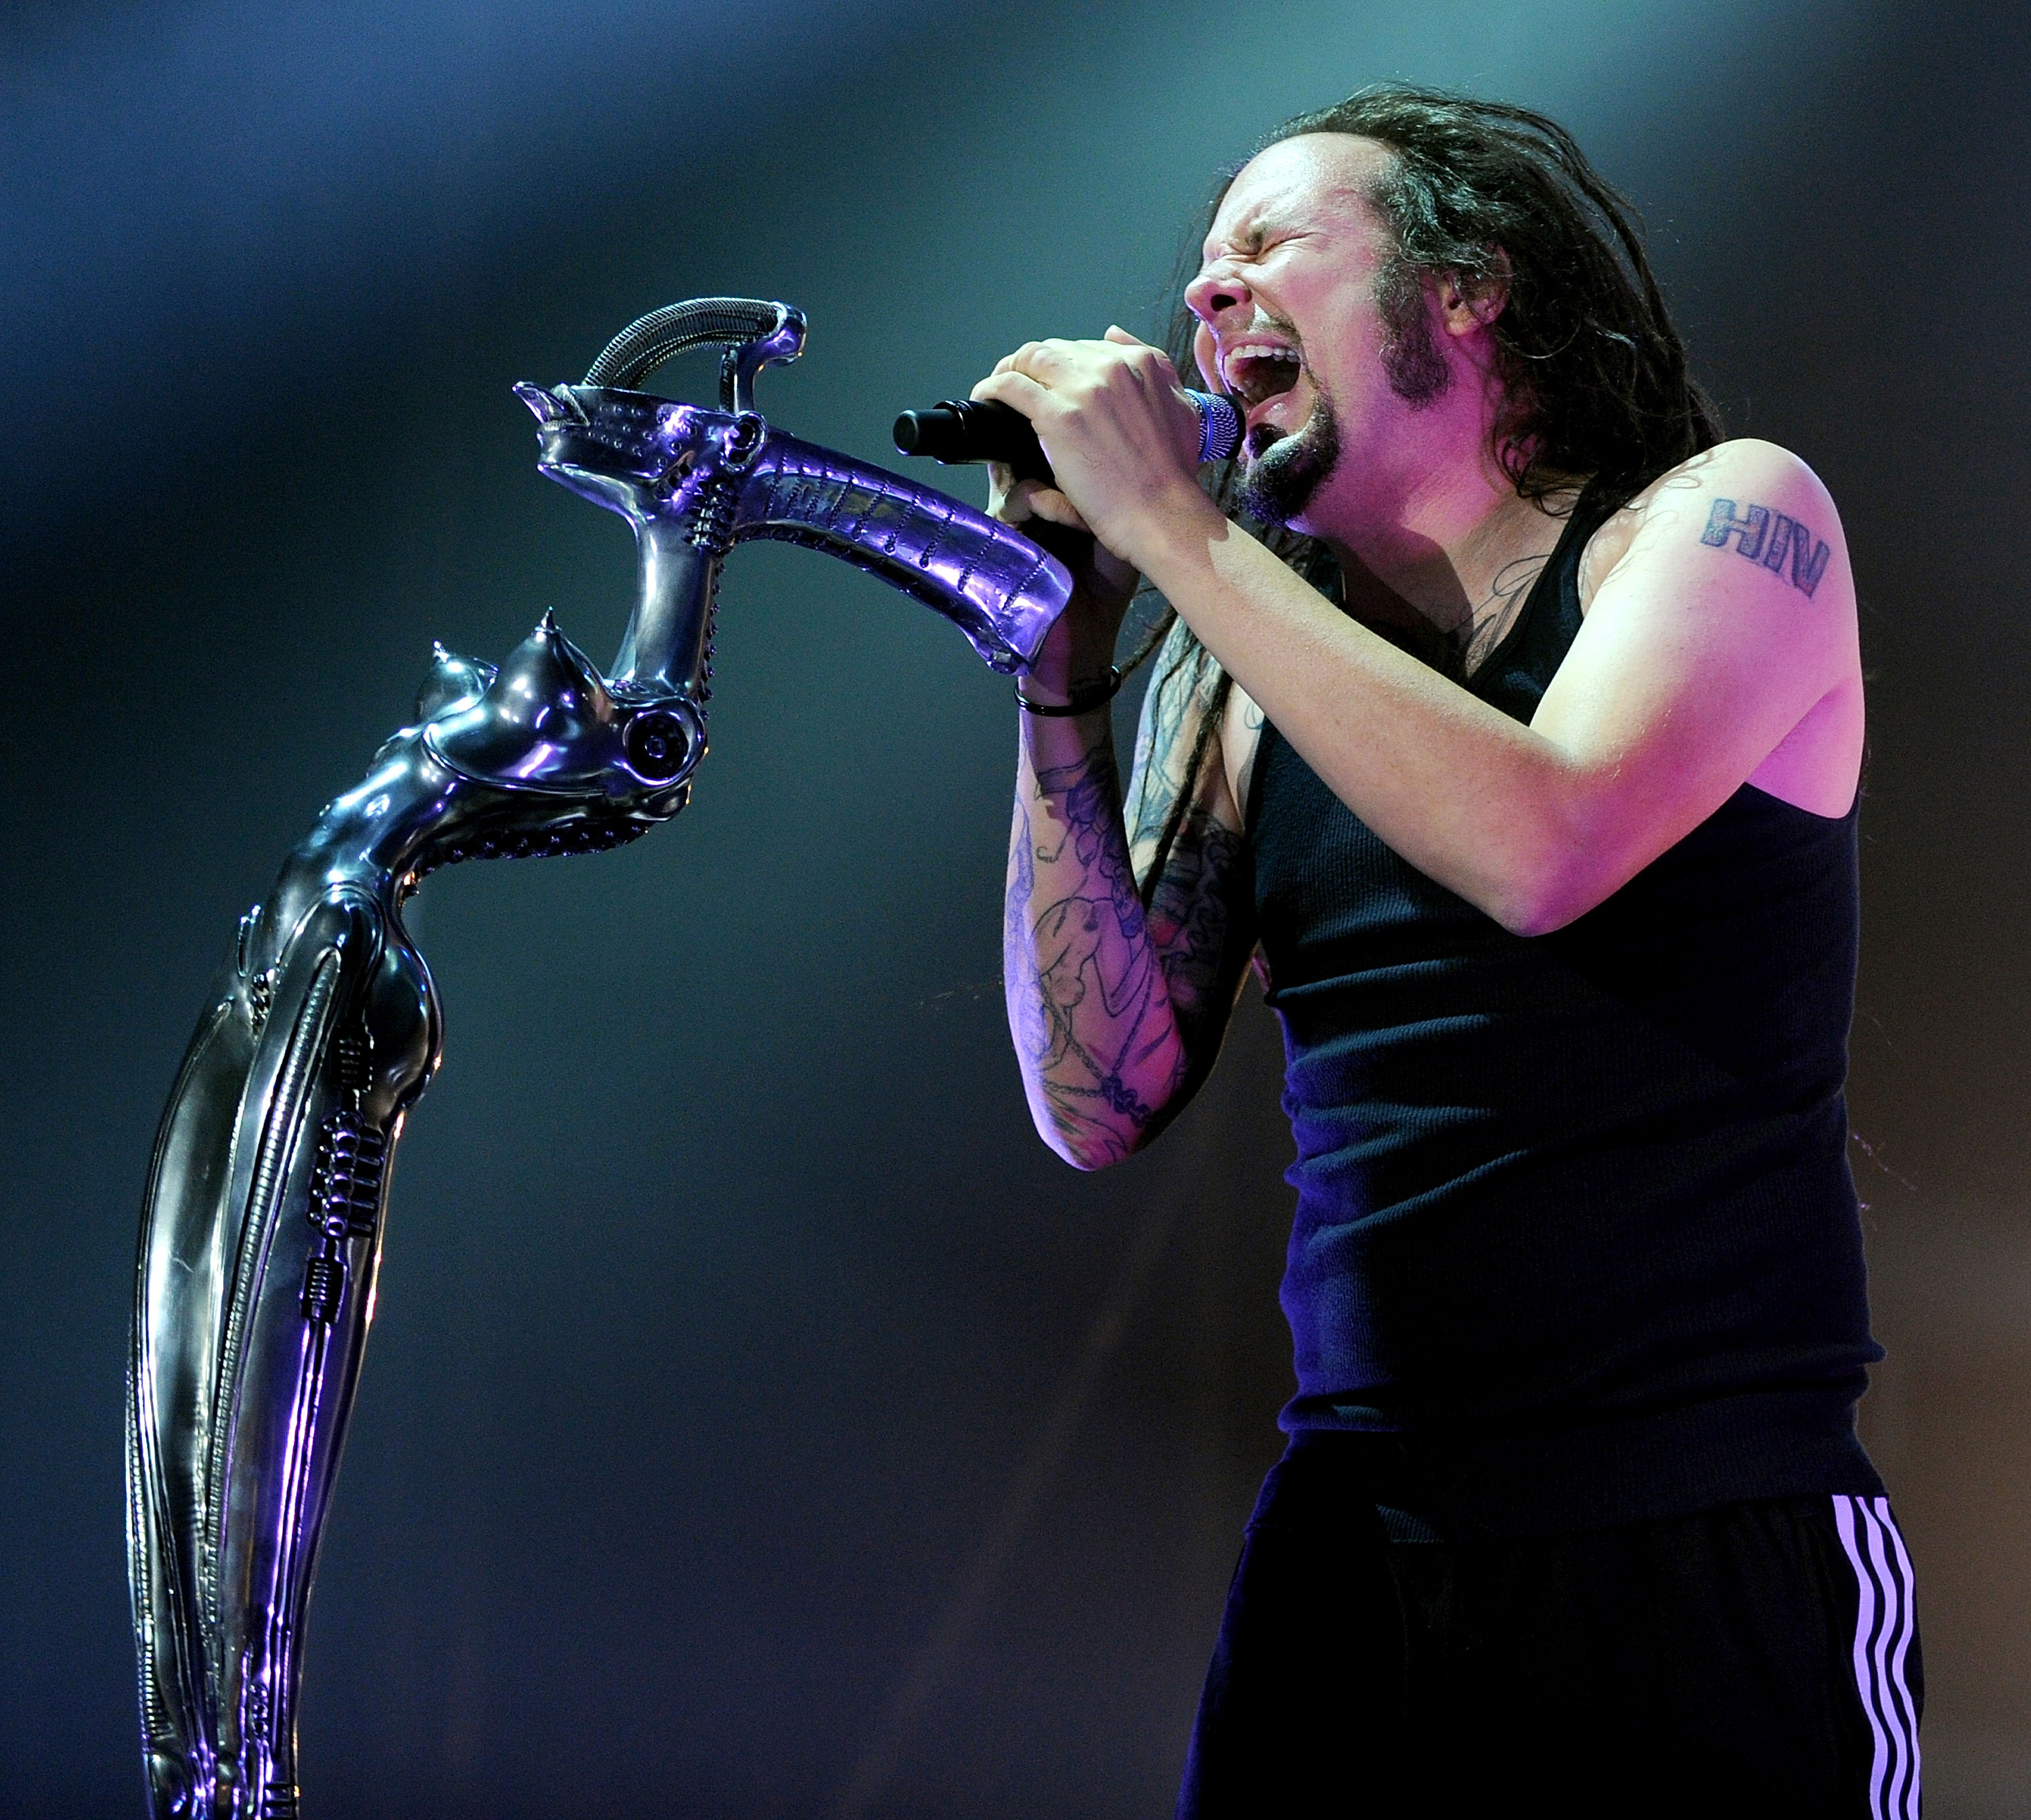 Korn in Manchester, England.